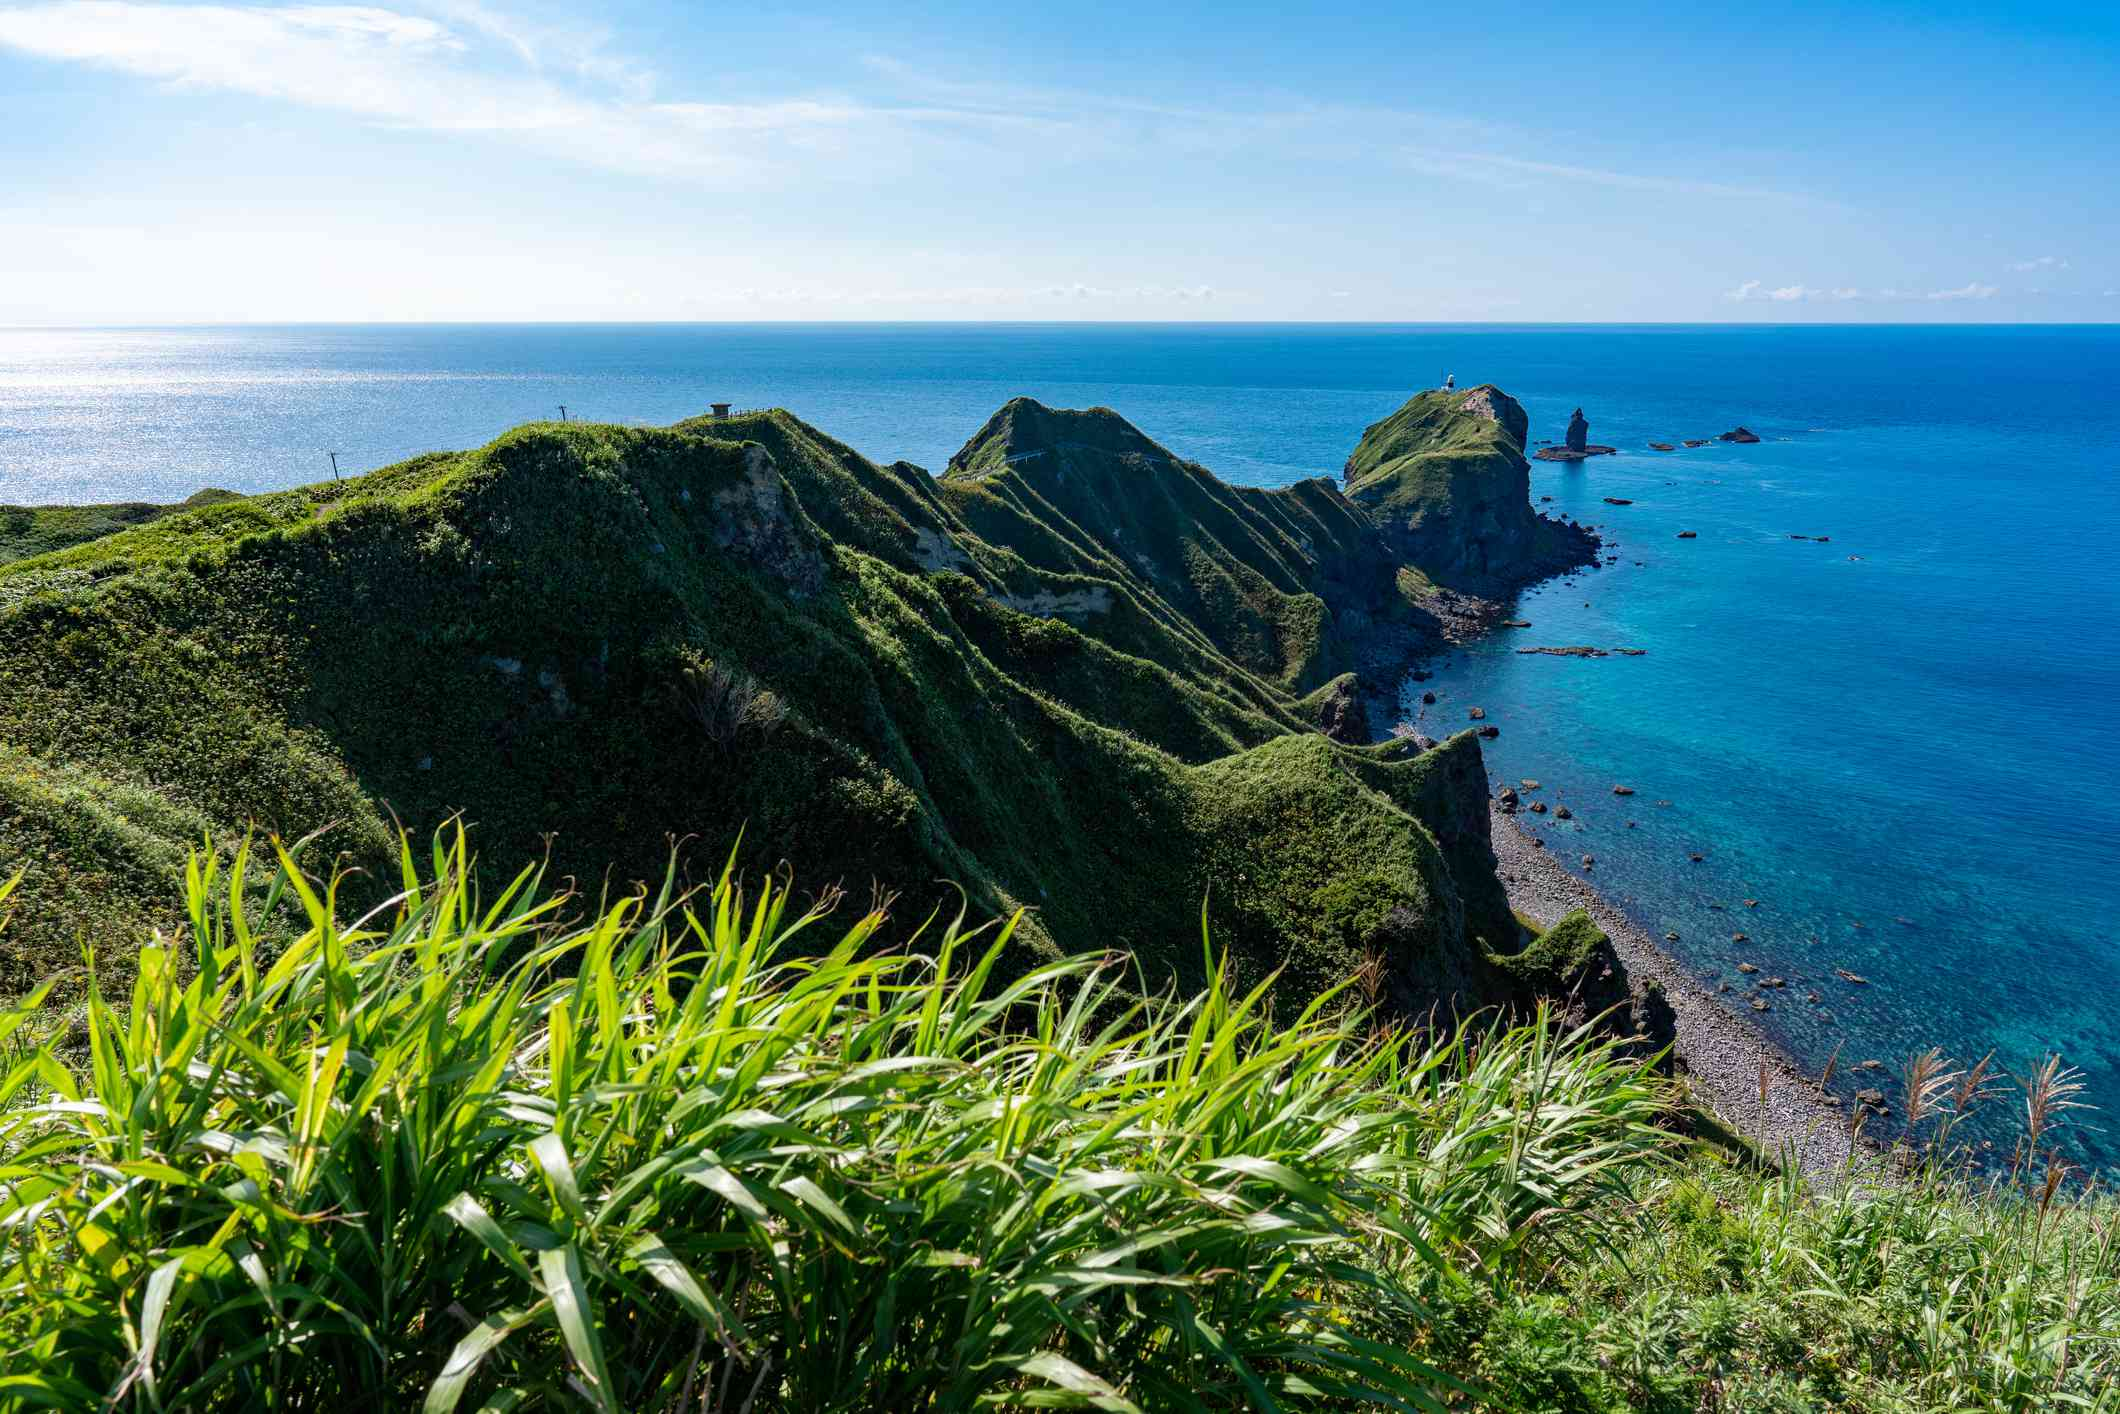 Rivew of the craggy, grass covered Shakotan Peninsula surrounded by turquosie blue water